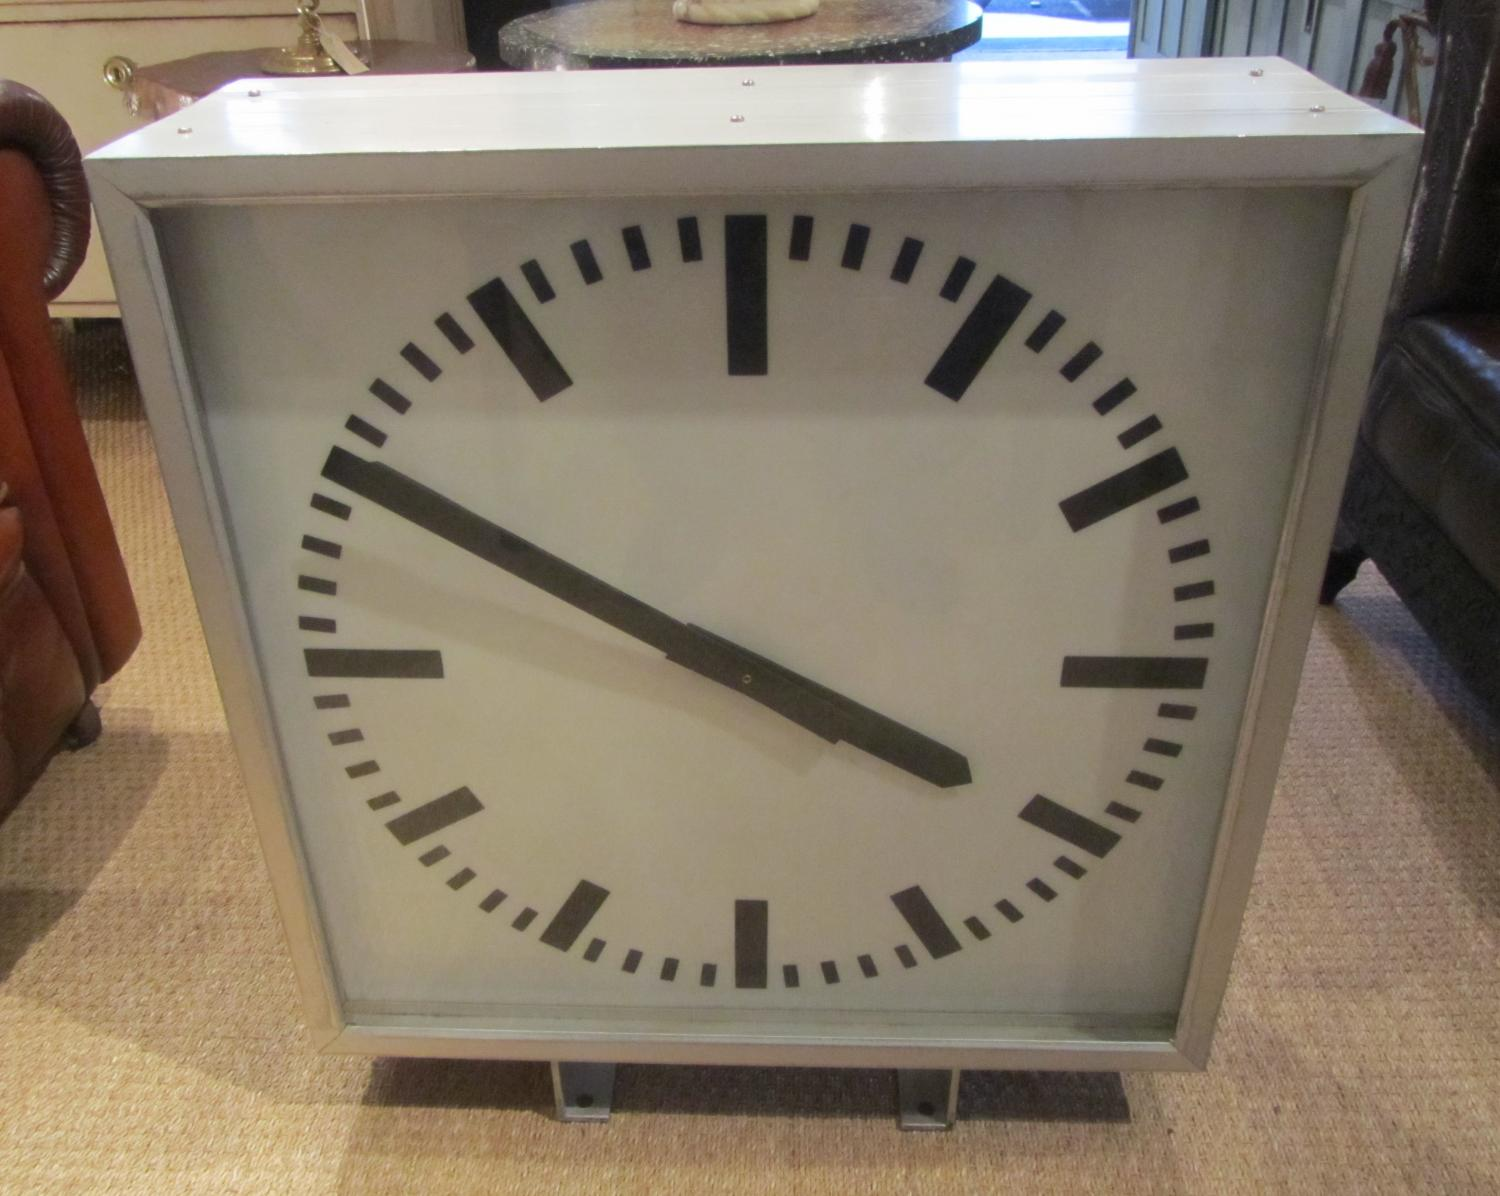 A large double sided clock